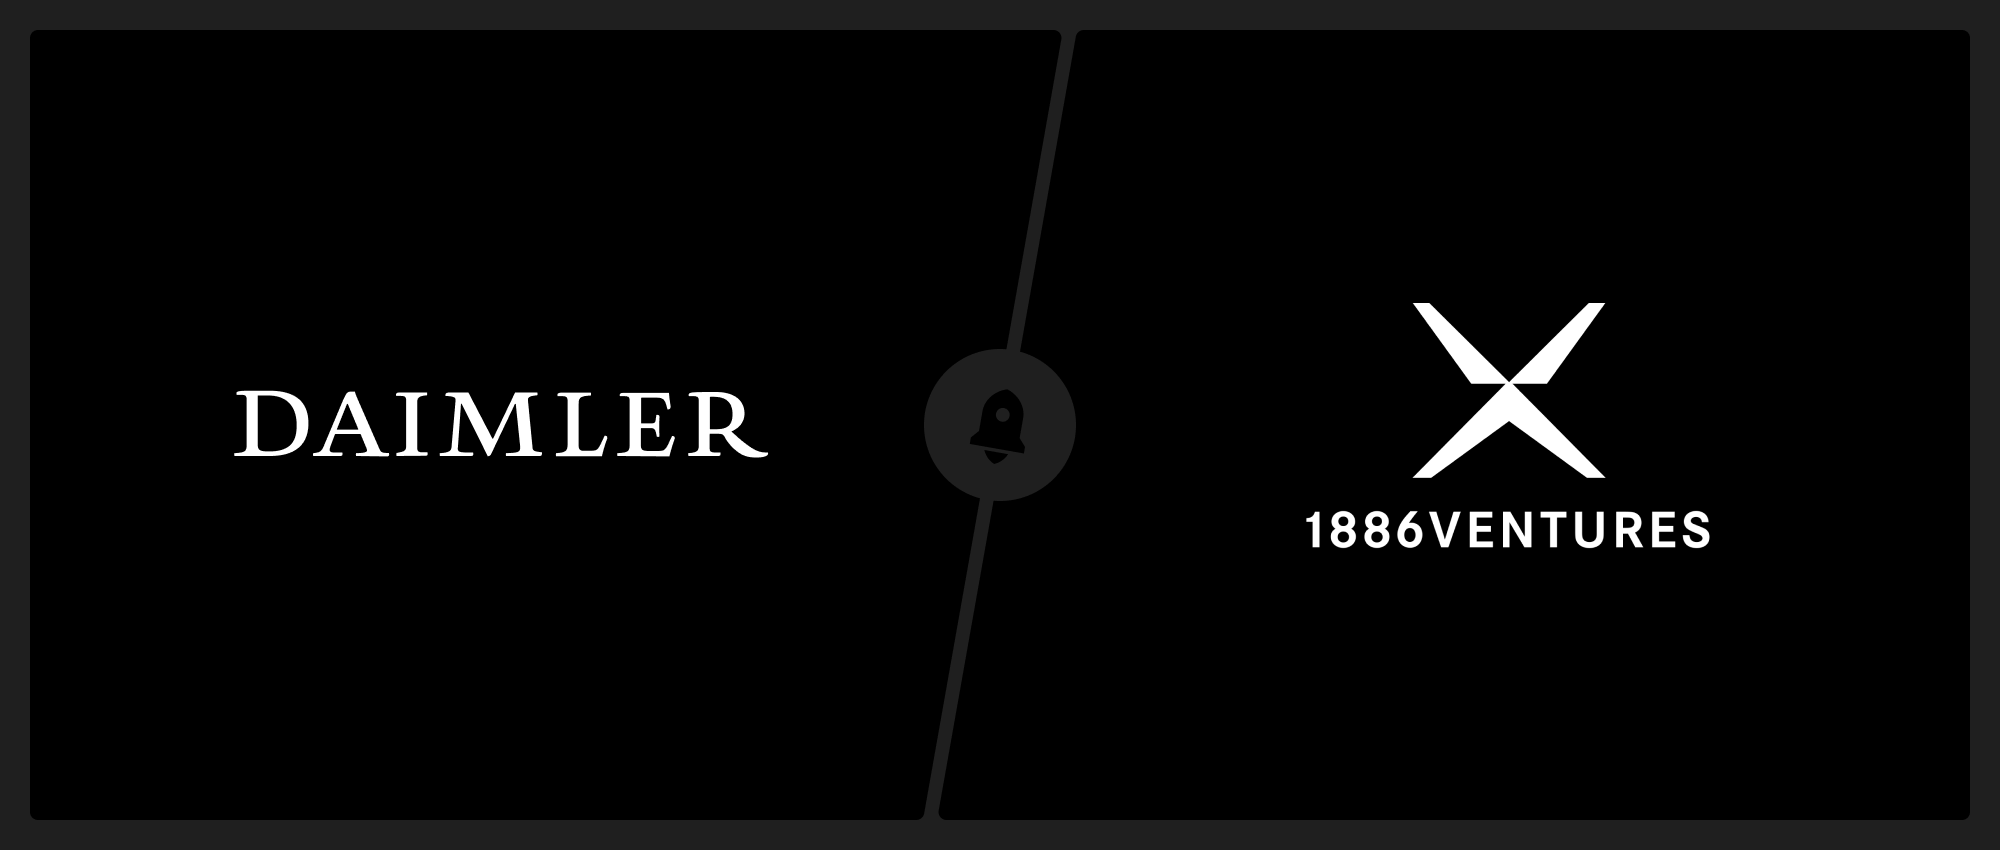 Daimler's 1886 Ventures: Shaping the future of mobility.